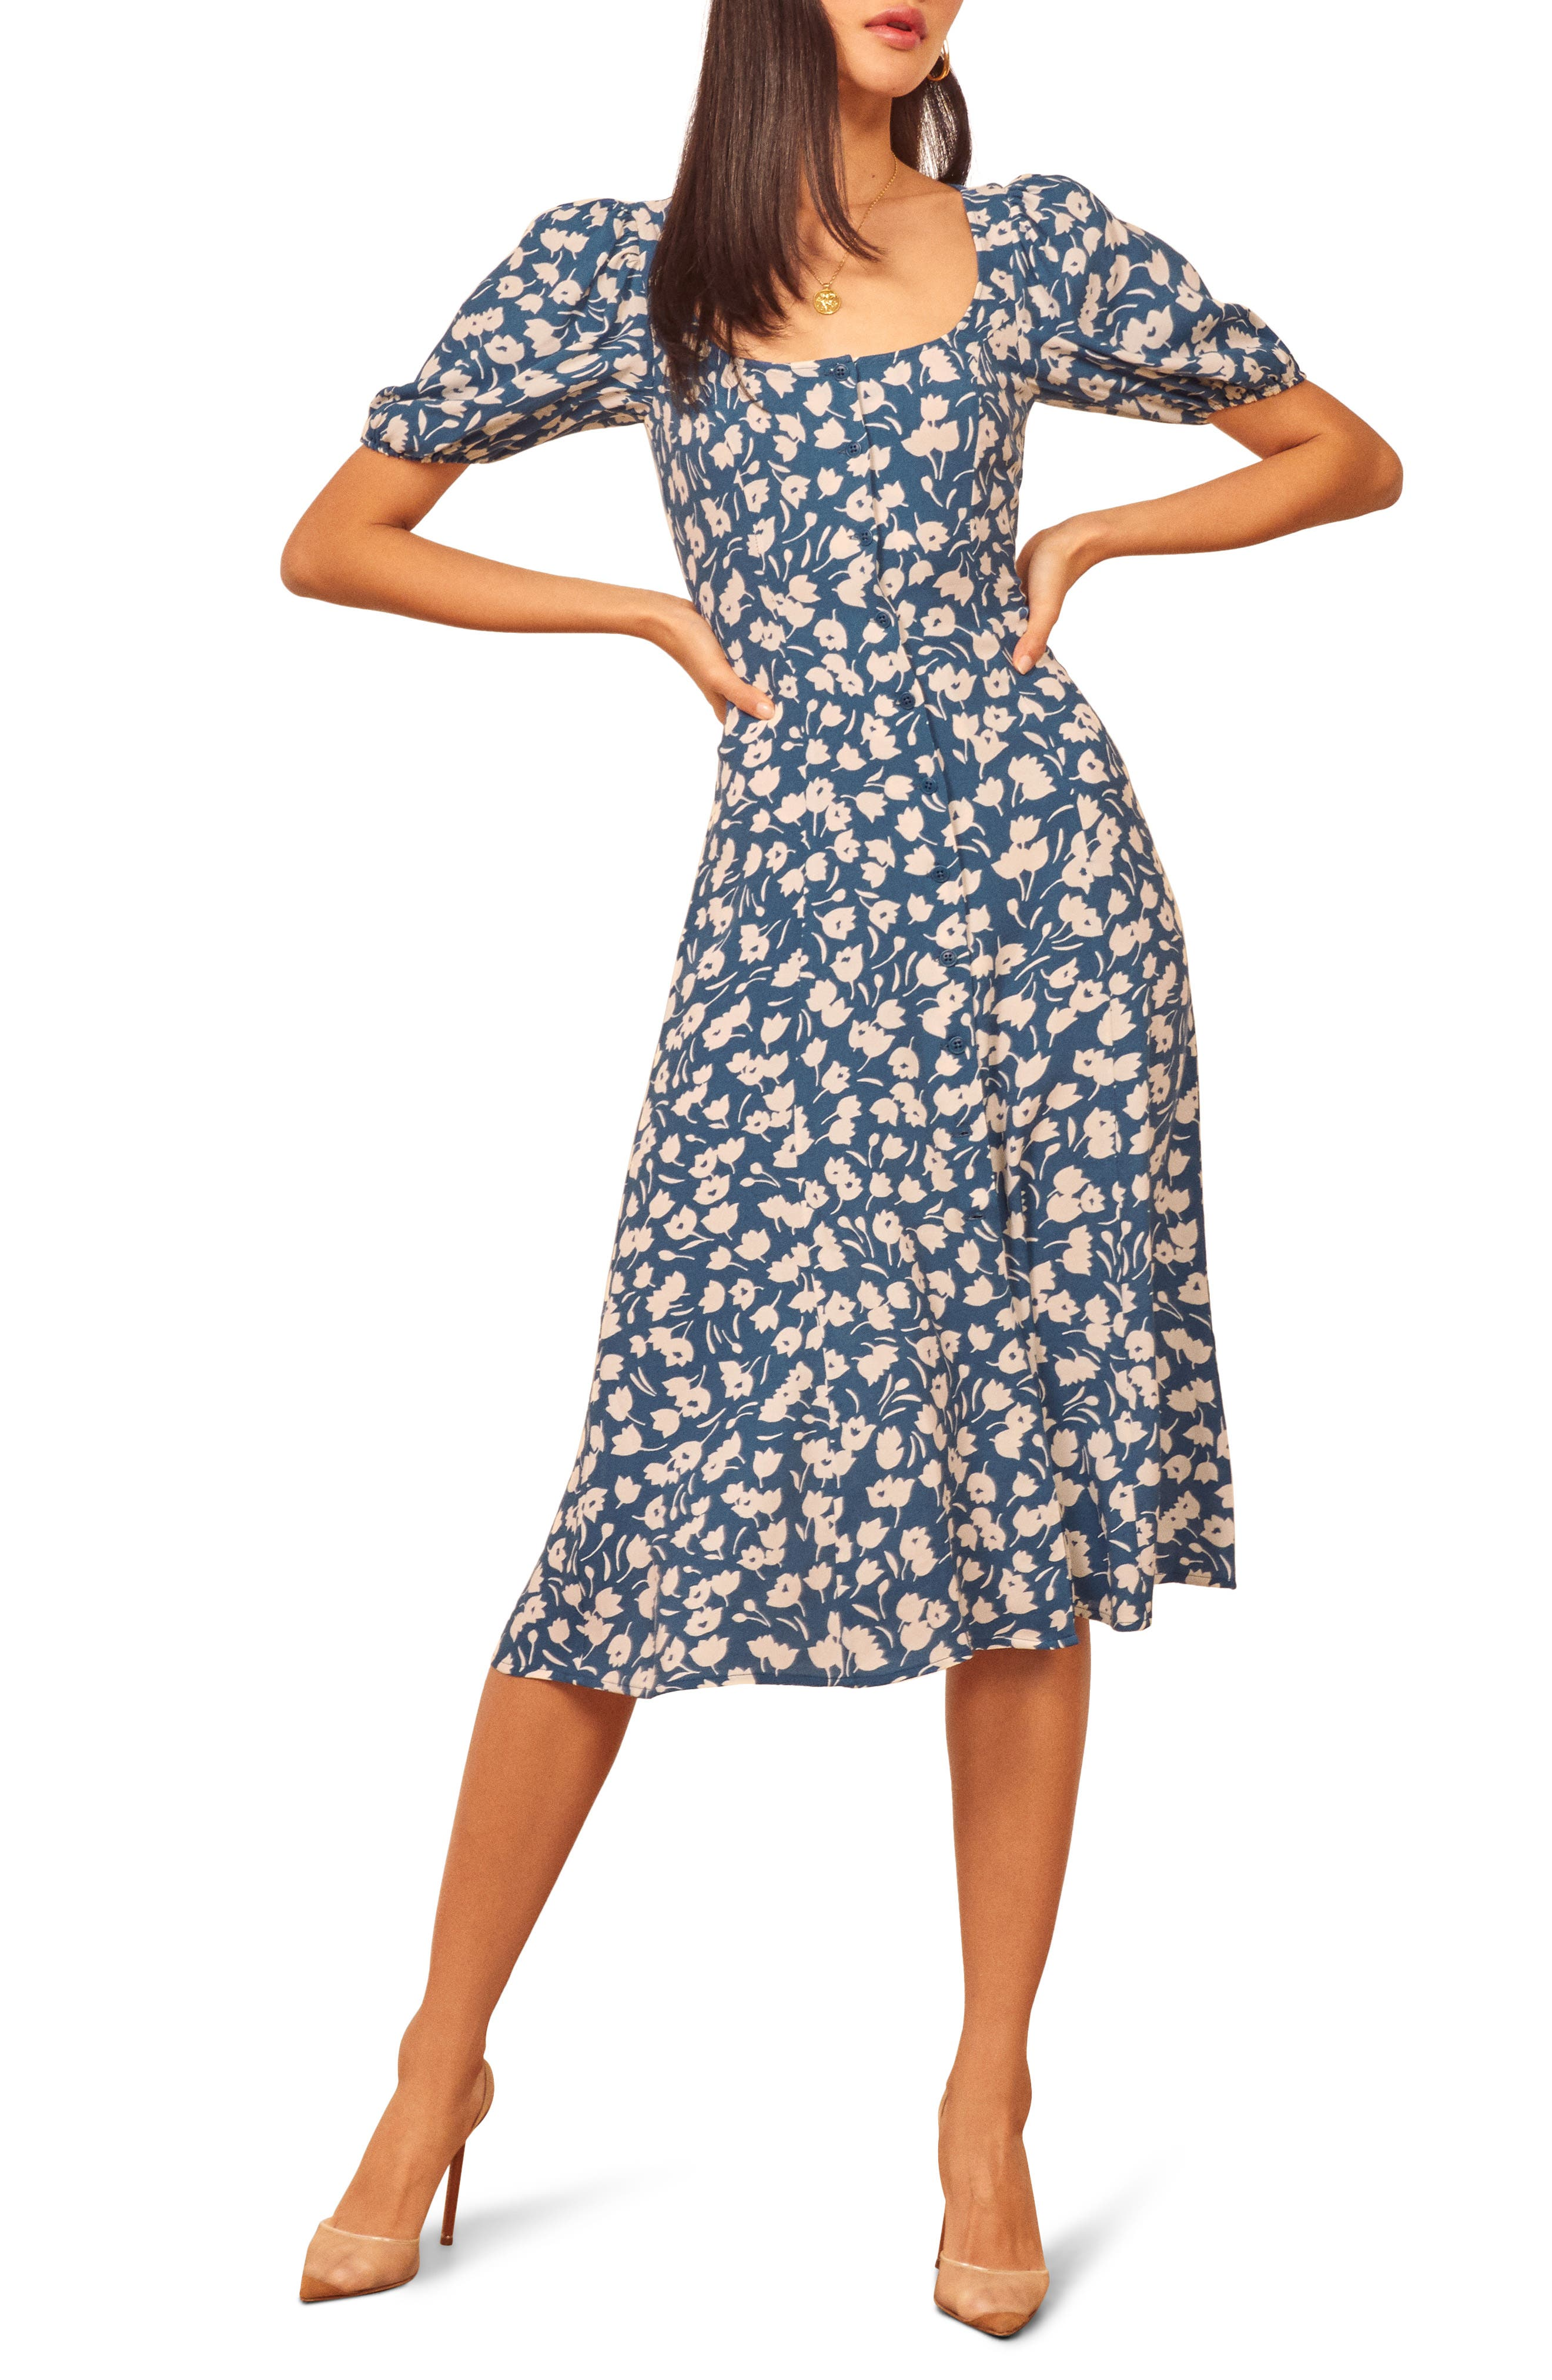 Fanciful allover blooms bring charm to this front-button midi framed with pretty puffed shoulders. Style Name: Reformation Beechwood Midi Dress. Style Number: 6036477. Available in stores.